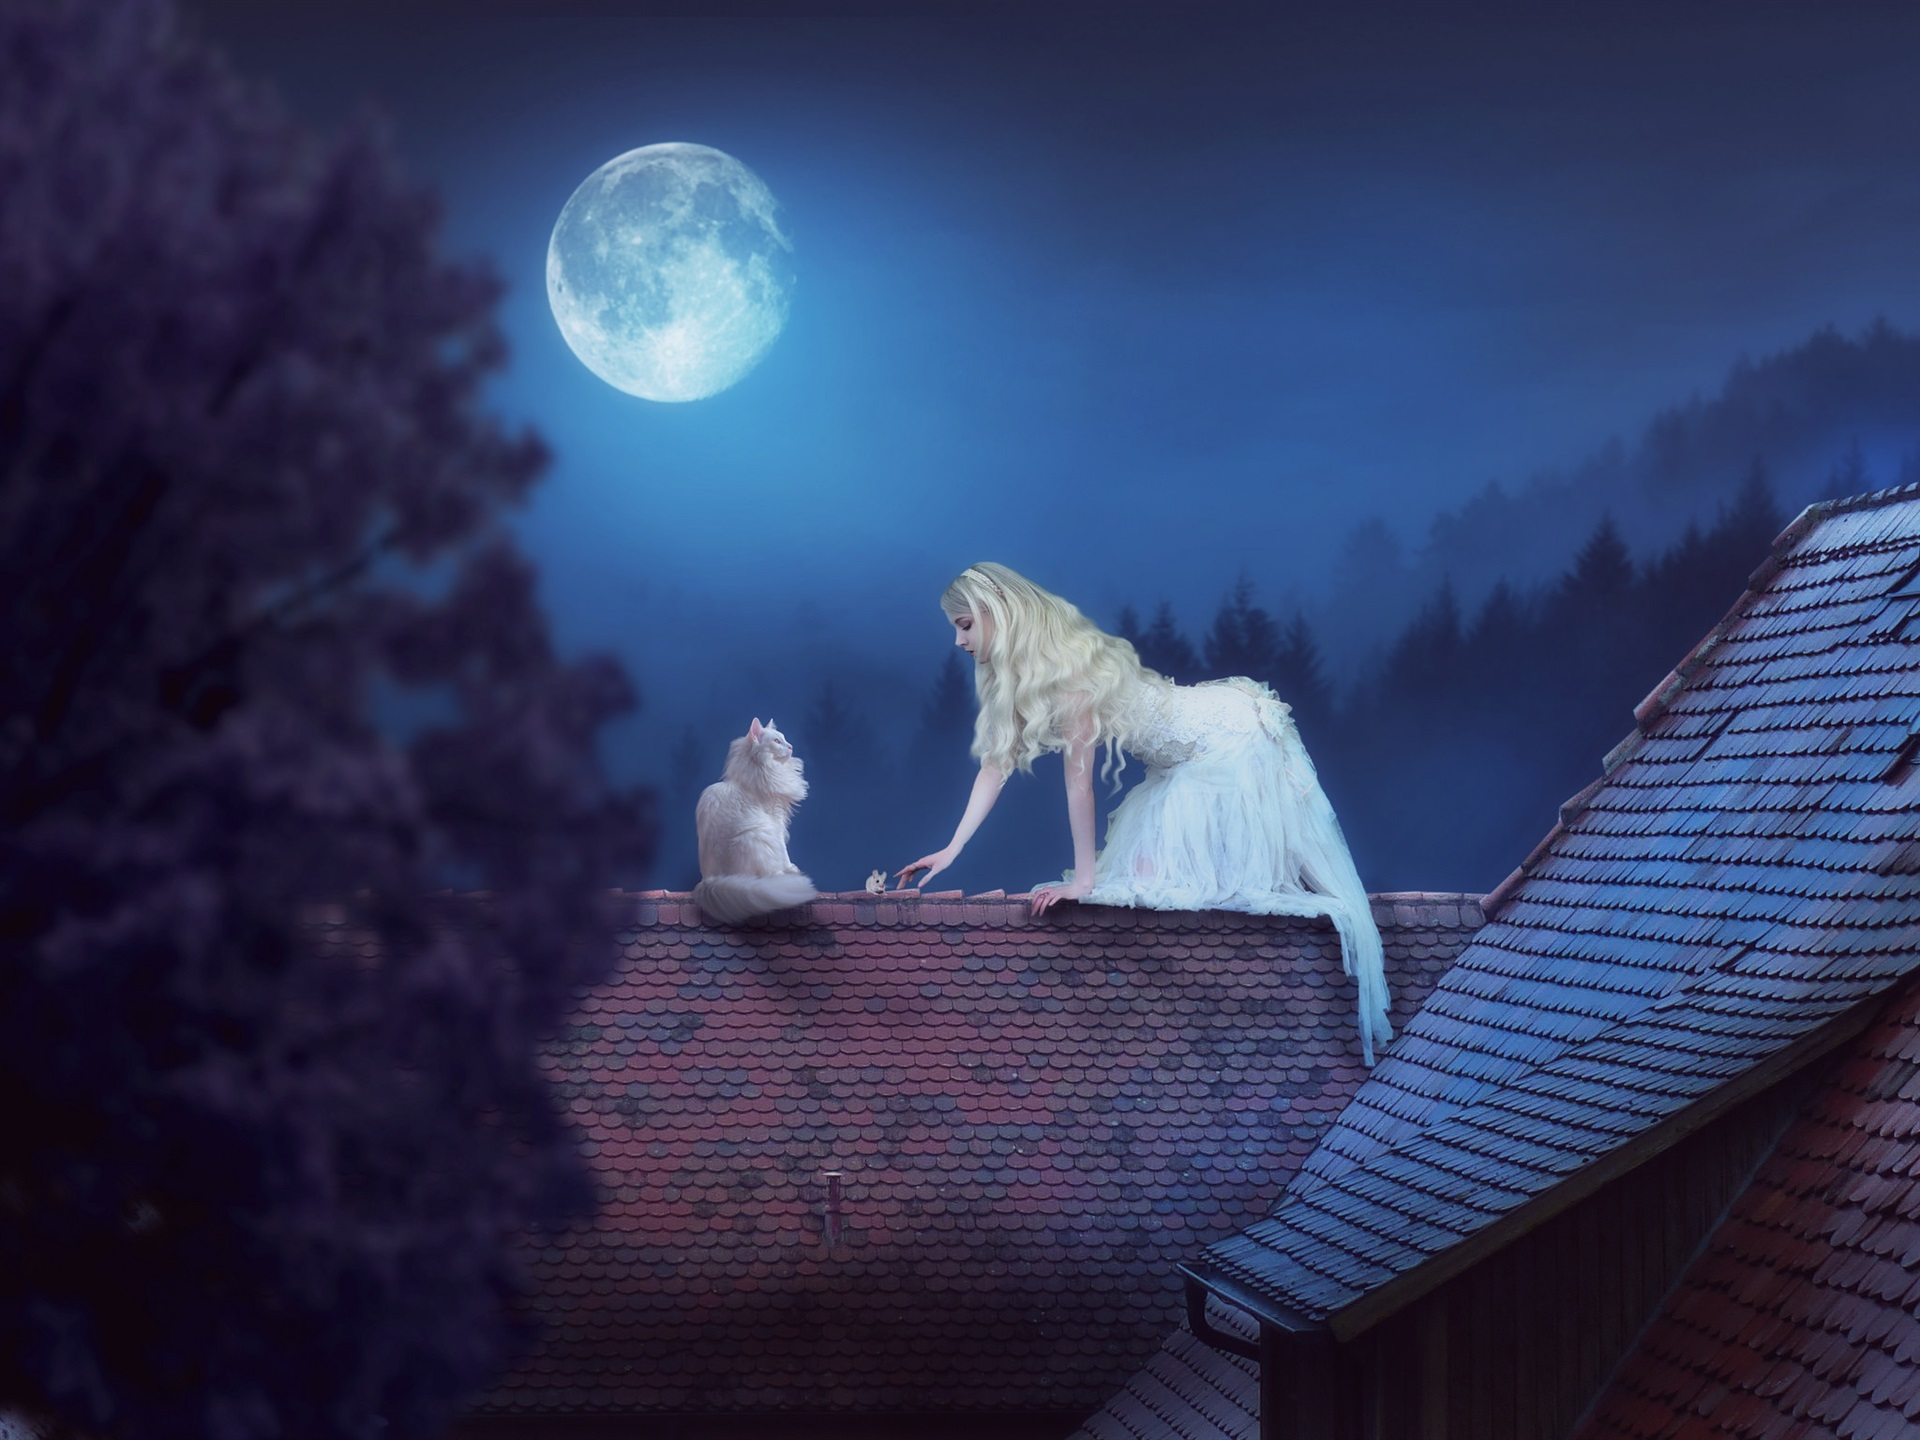 Cool Wallpaper Night Cat - White-skirt-girl-and-cat-roof-moon-night-creative-picture_1920x1440  Photograph.jpg